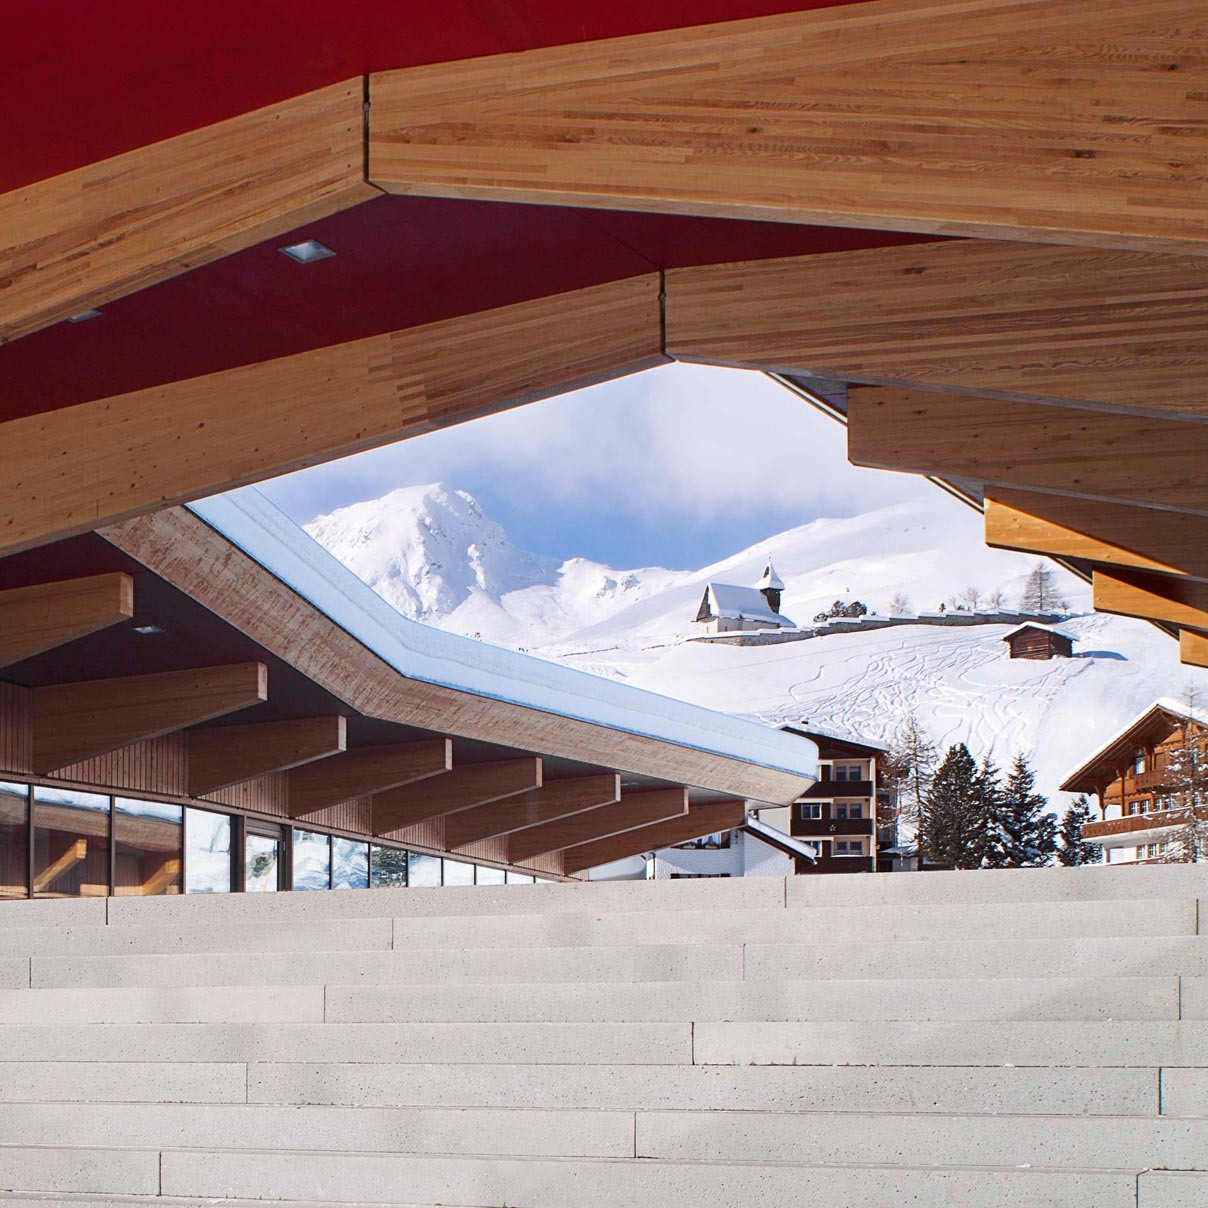 maskarade-architecture-arosa-parkgarage-innerarosa-2011-touristique-toiture-lamelle-collee-1208